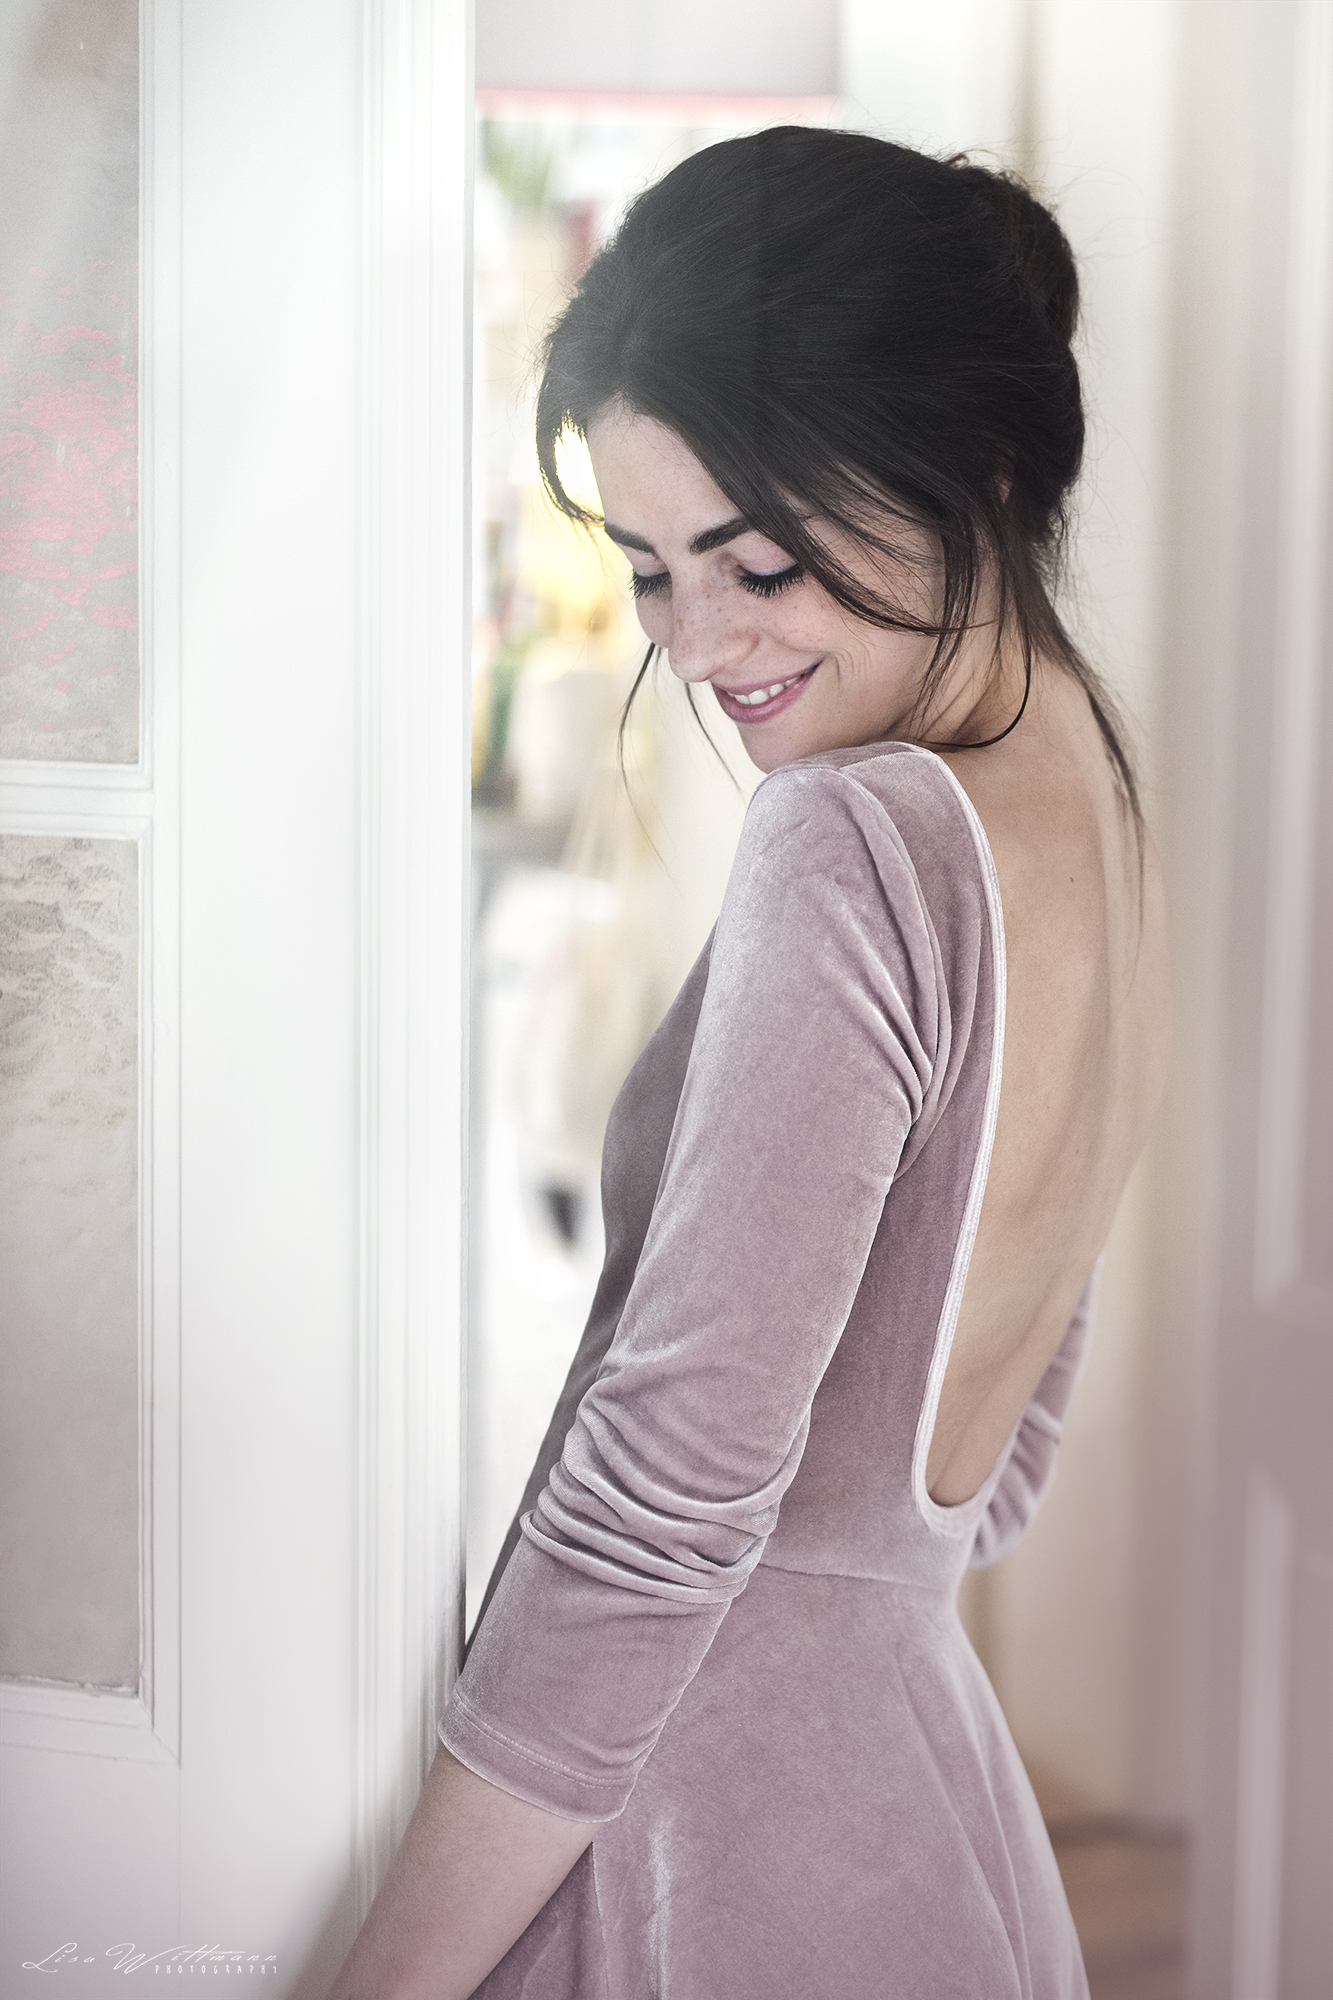 lisa_wittmann_photography_woman_backless_dress_window_laugh_beautiful_freckles_apartment_flat_bun_natural_available_smile